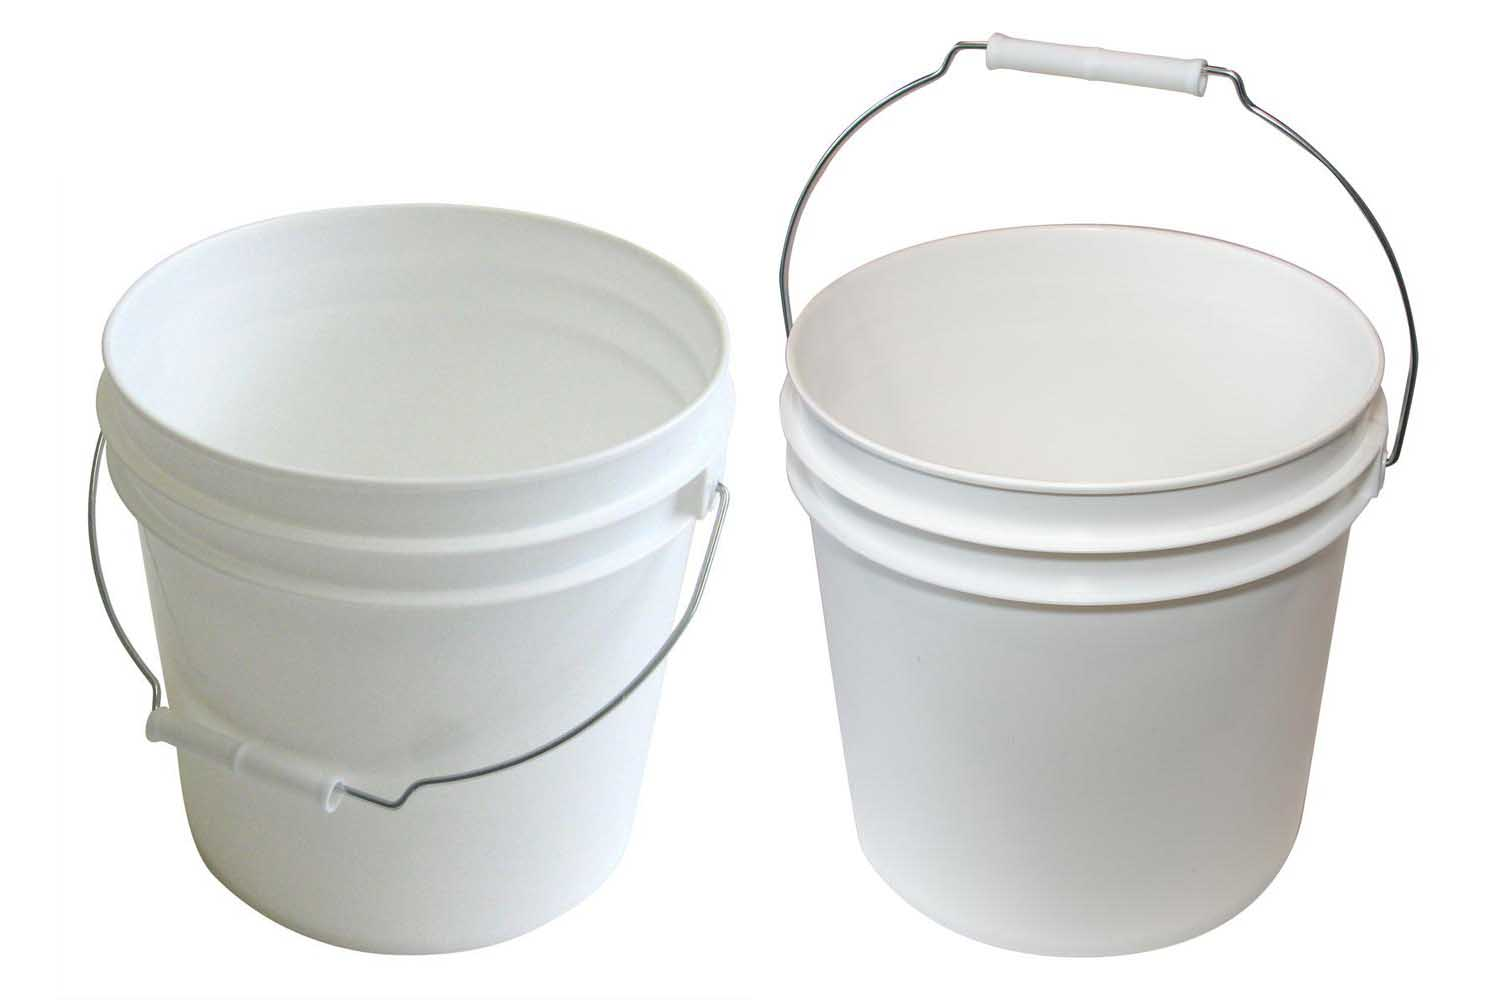 Water buckets for rinsing your wash mitt